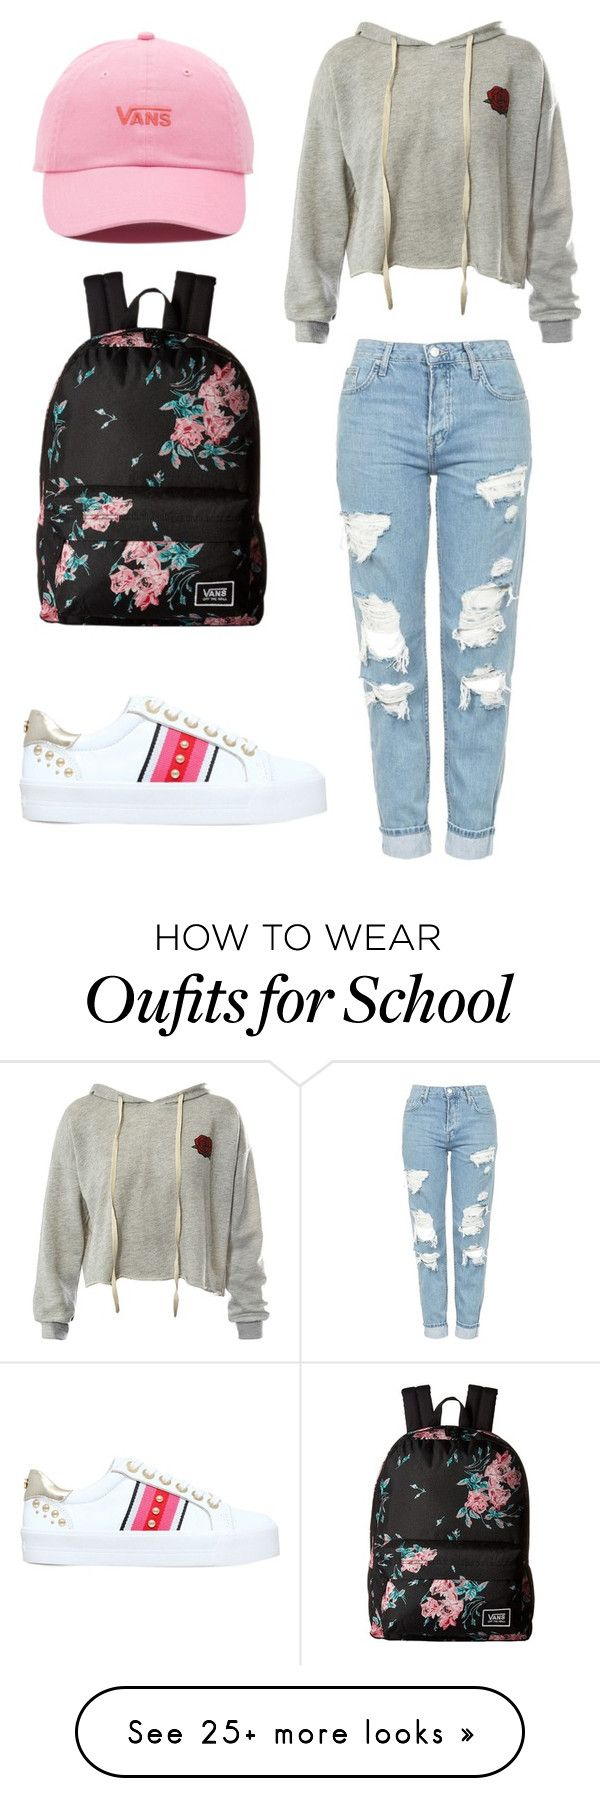 """School outfits"" by aneta200 on Polyvore featuring Sans Souci, Carvela, Topshop and Vans"